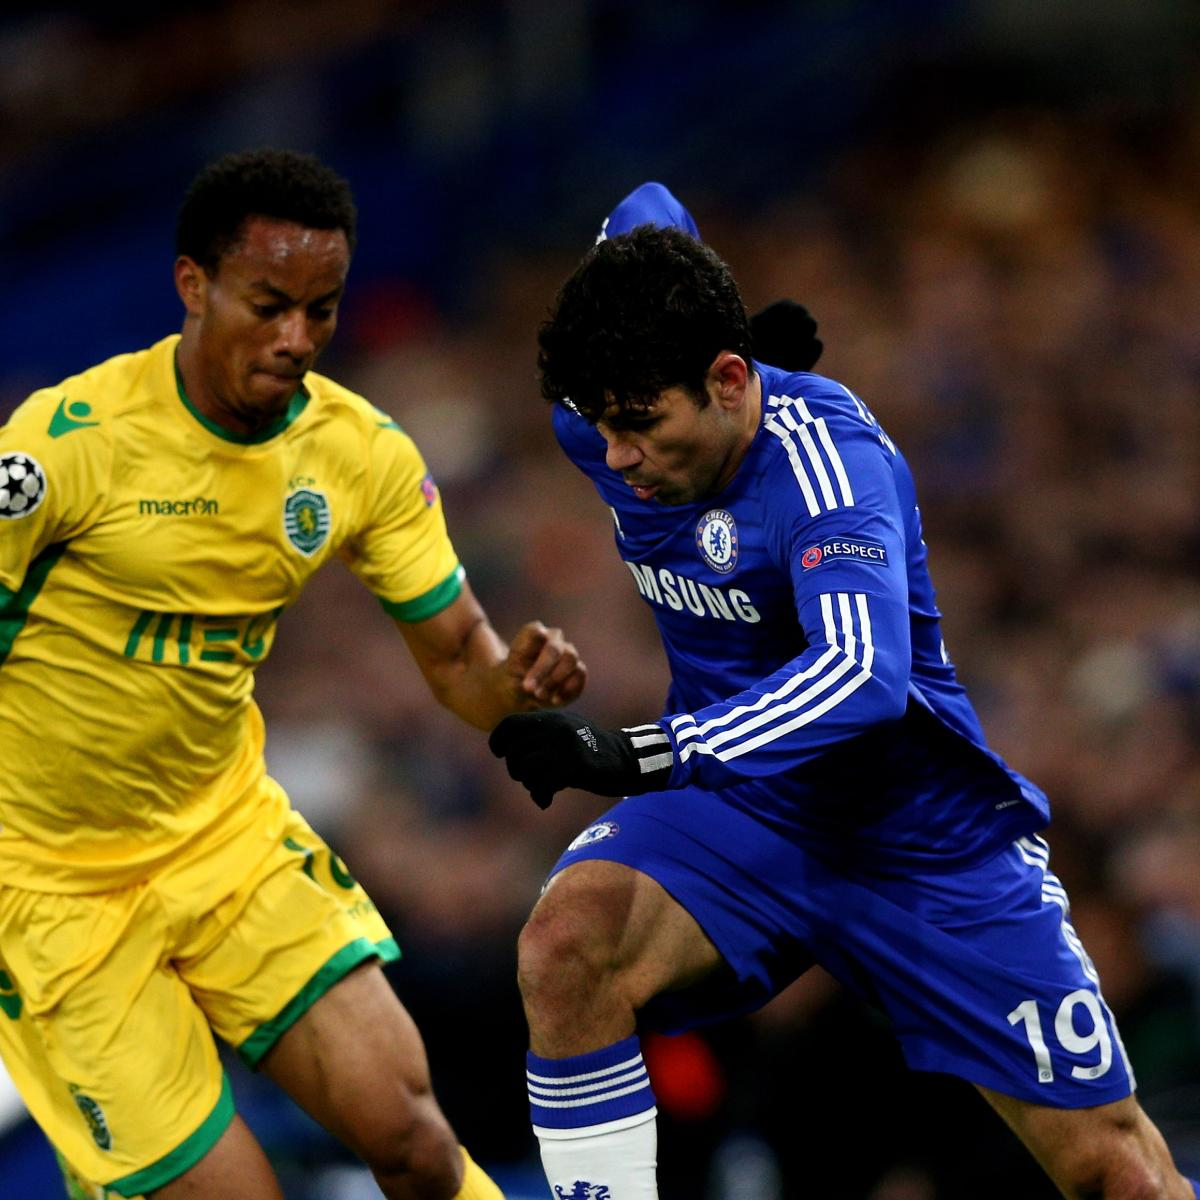 Psg Vs Chelsea Live Score Highlights From Champions: Chelsea Vs. Sporting Lisbon: Live Score, Highlights From